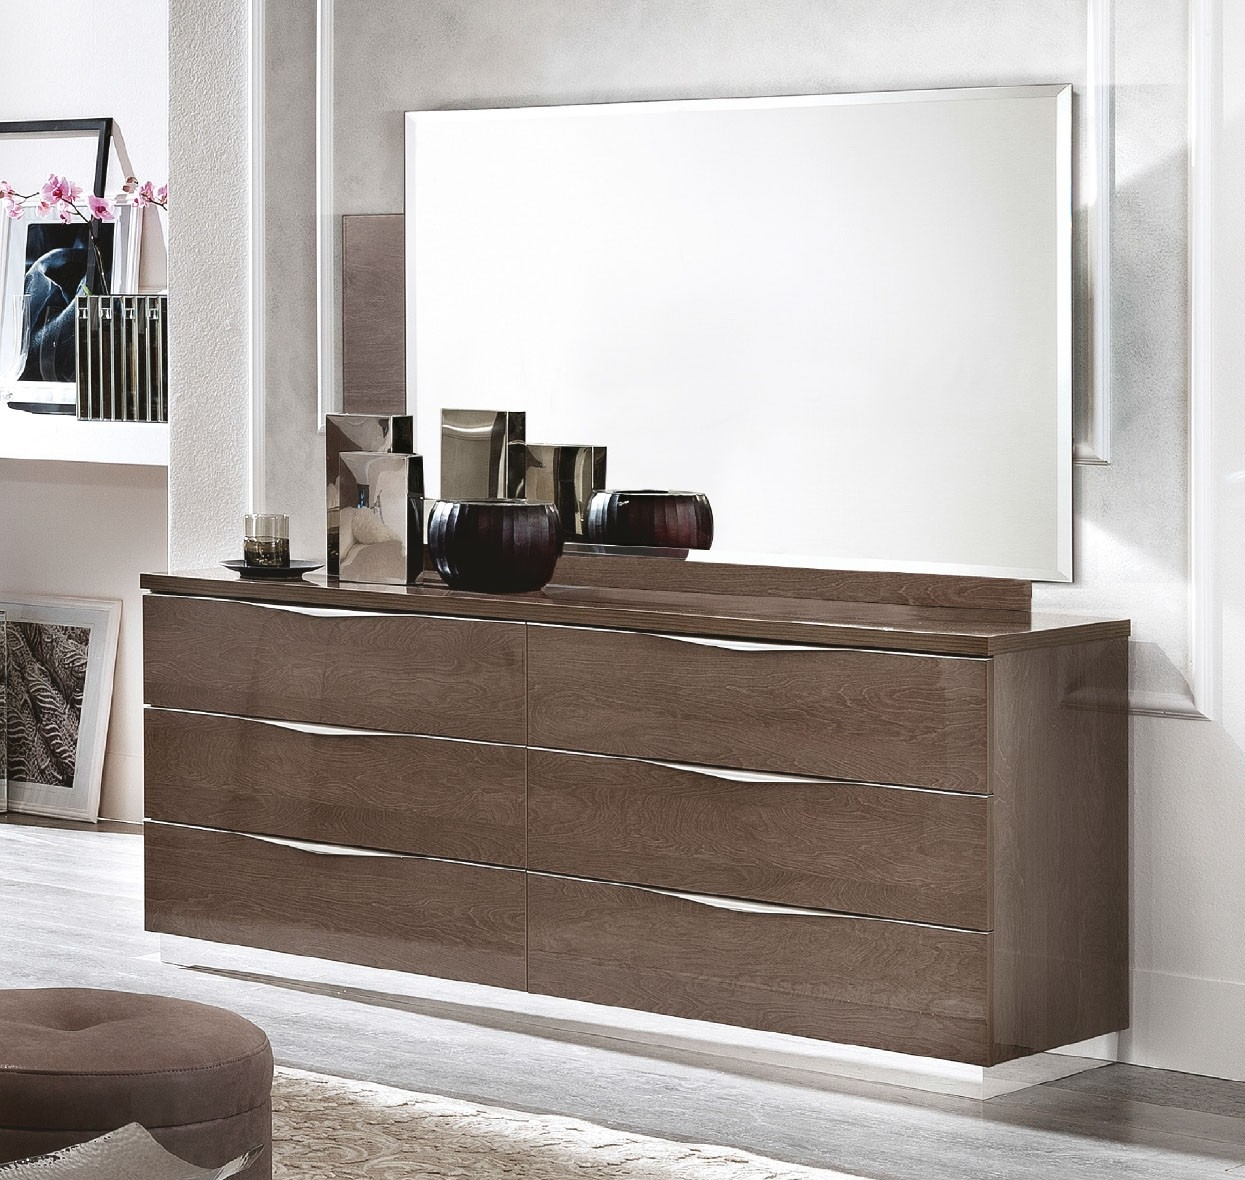 Camel Platinum Night Italian 6 Drawer Dresser